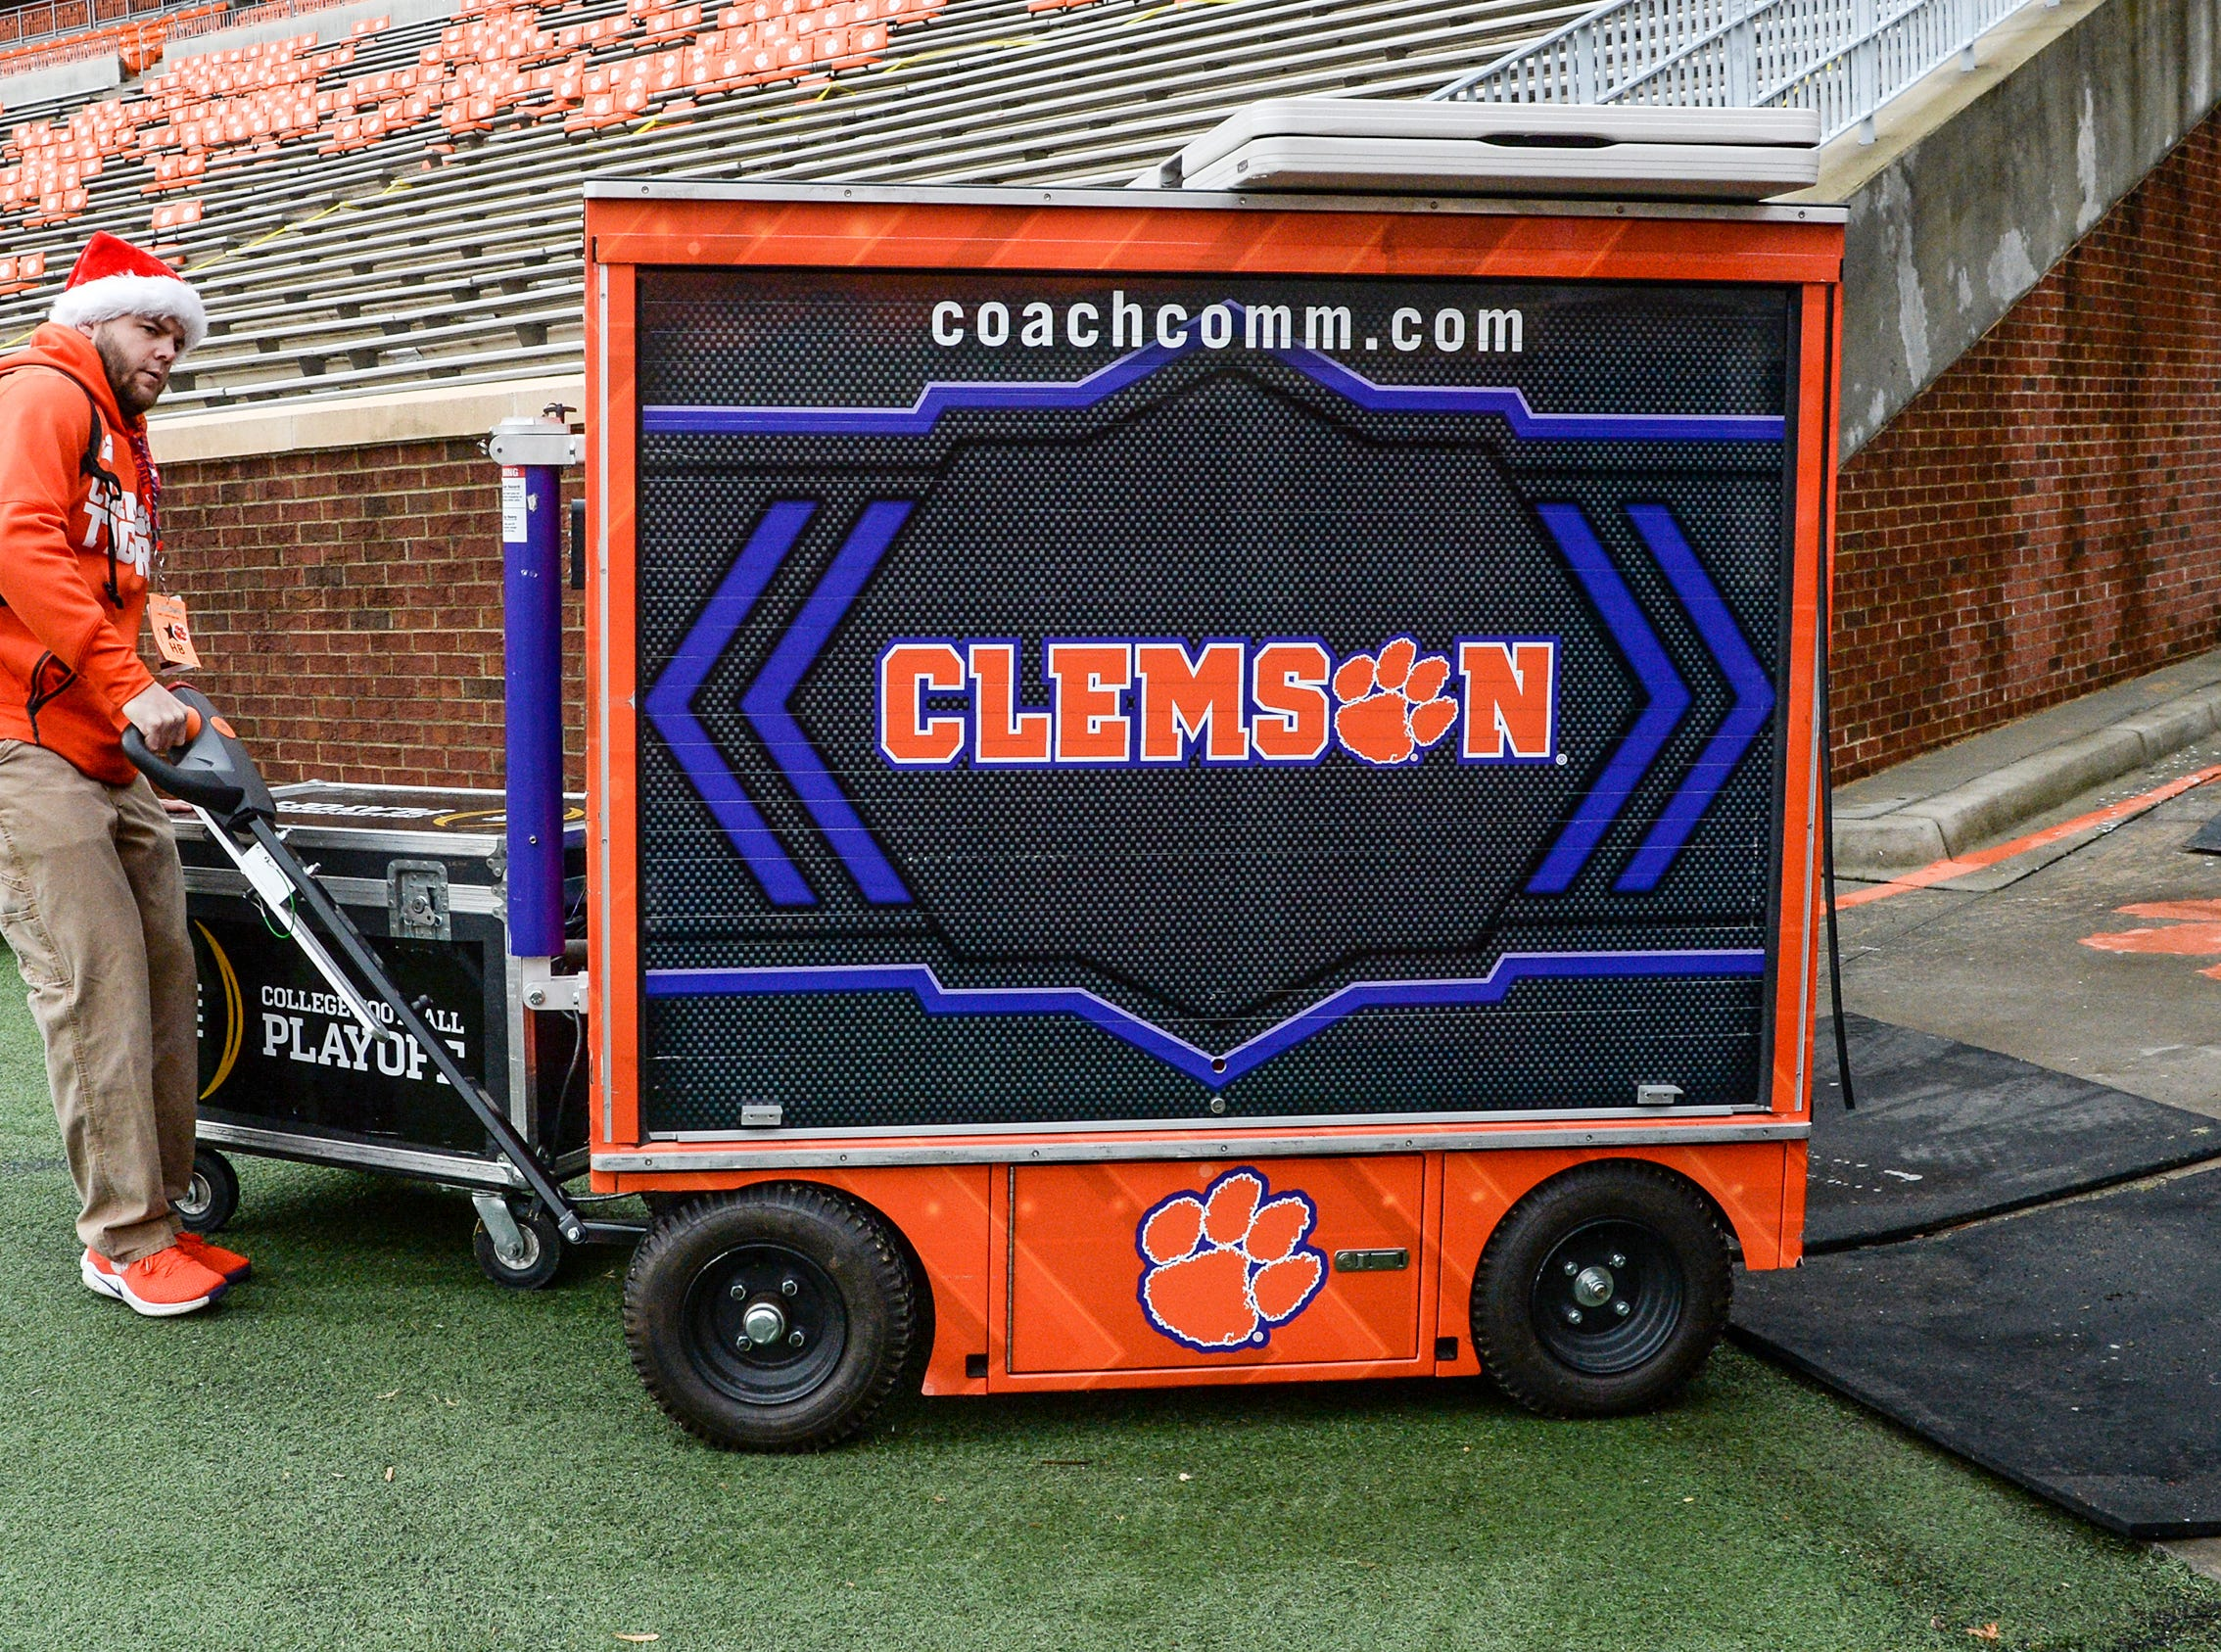 Billy Ruitherford, a Clemson University, brings equipment on the field seven hours before kickoff in Memorial Stadium, before the South Carolina at Clemson football game in Clemson on Saturday, November 24, 2018.